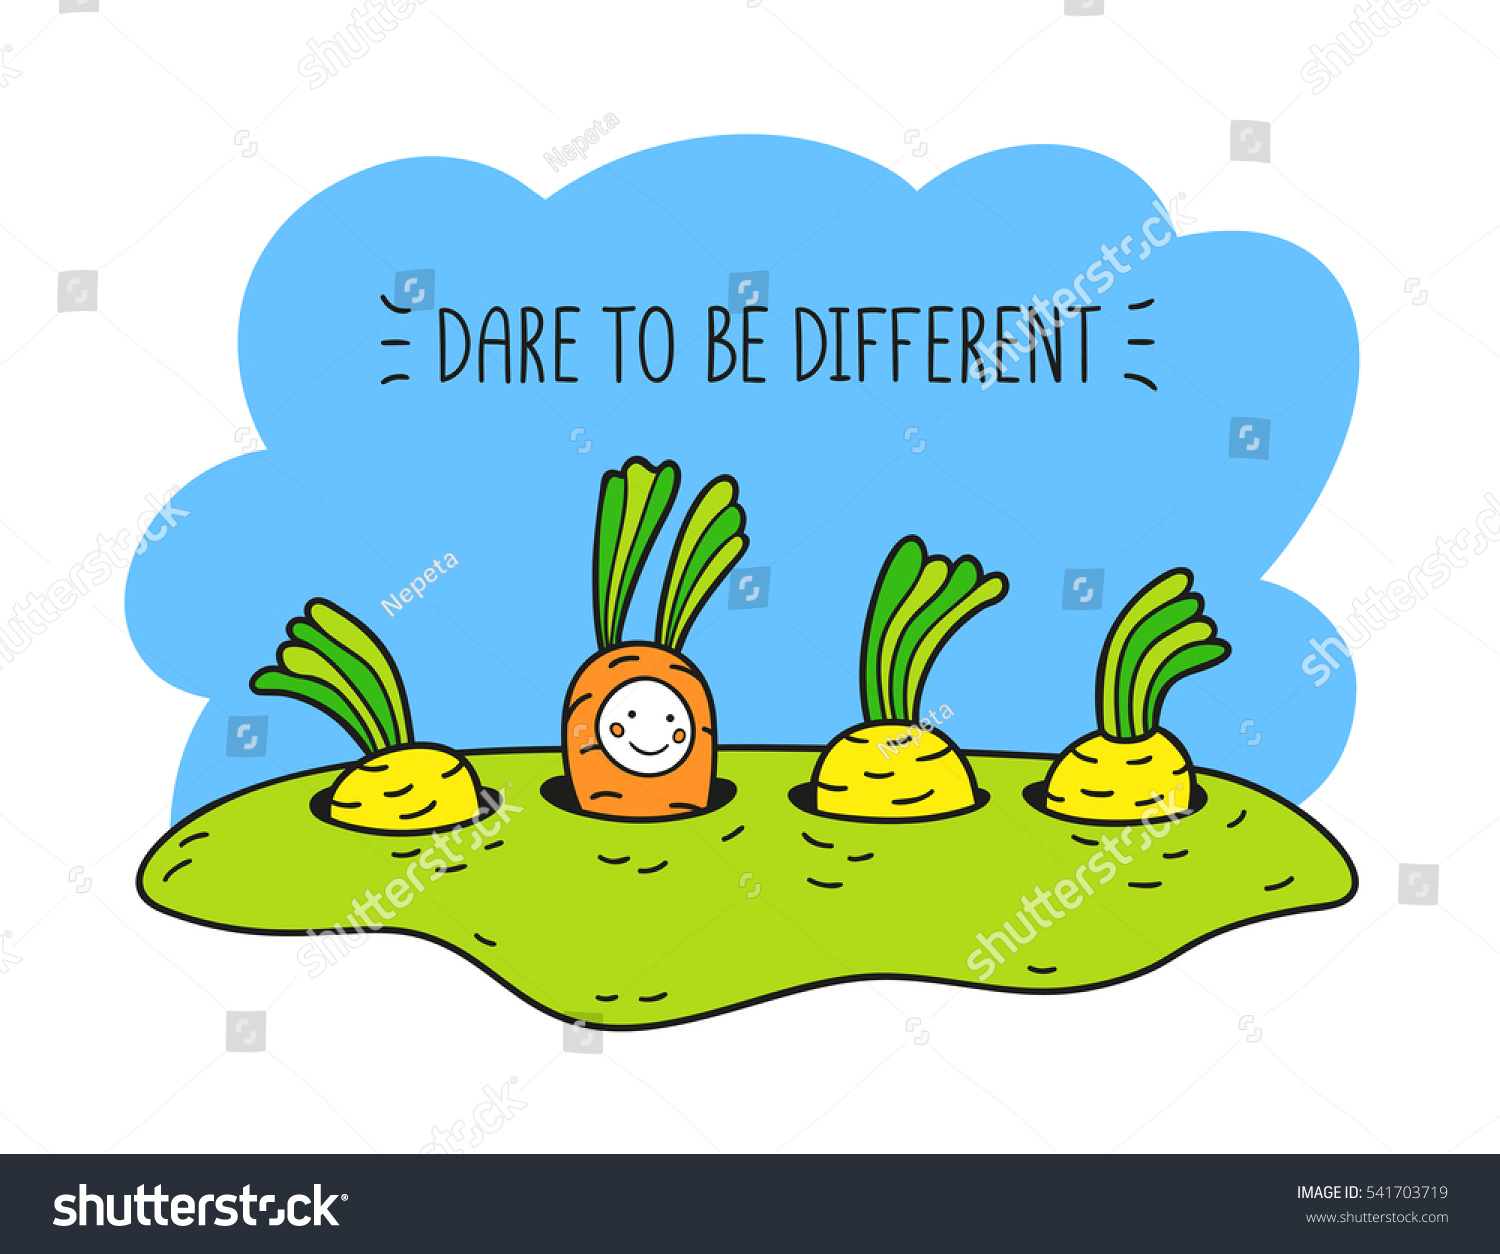 Dare to be different xvideo by mark heffron